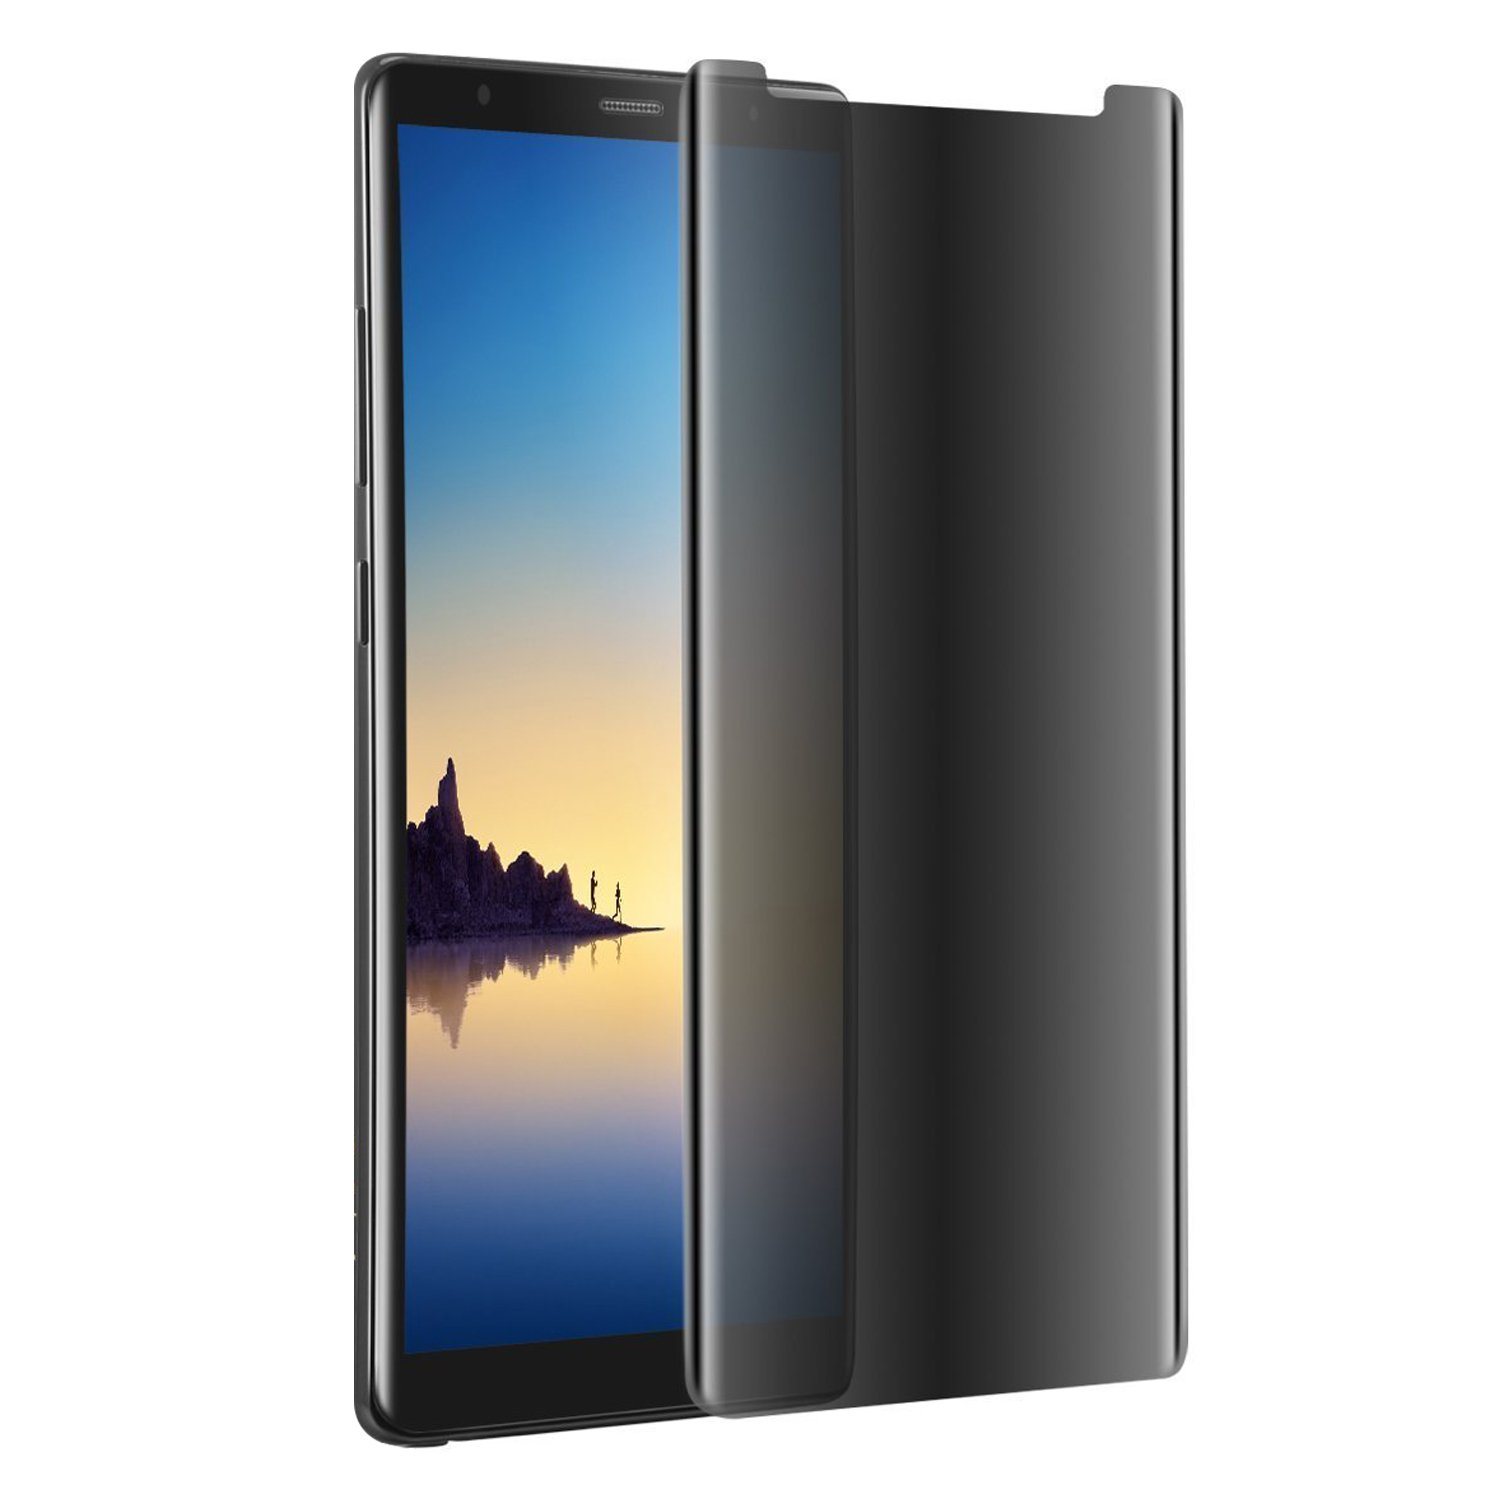 Galaxy Note 8 Tempered Glass Screen Protector, Maxsoco Privacy Case Friendly 3D Curved Edge Bubble-Free Easy to Apply Anti-Spy for Samsung Galaxy Note 8 (Transparent)